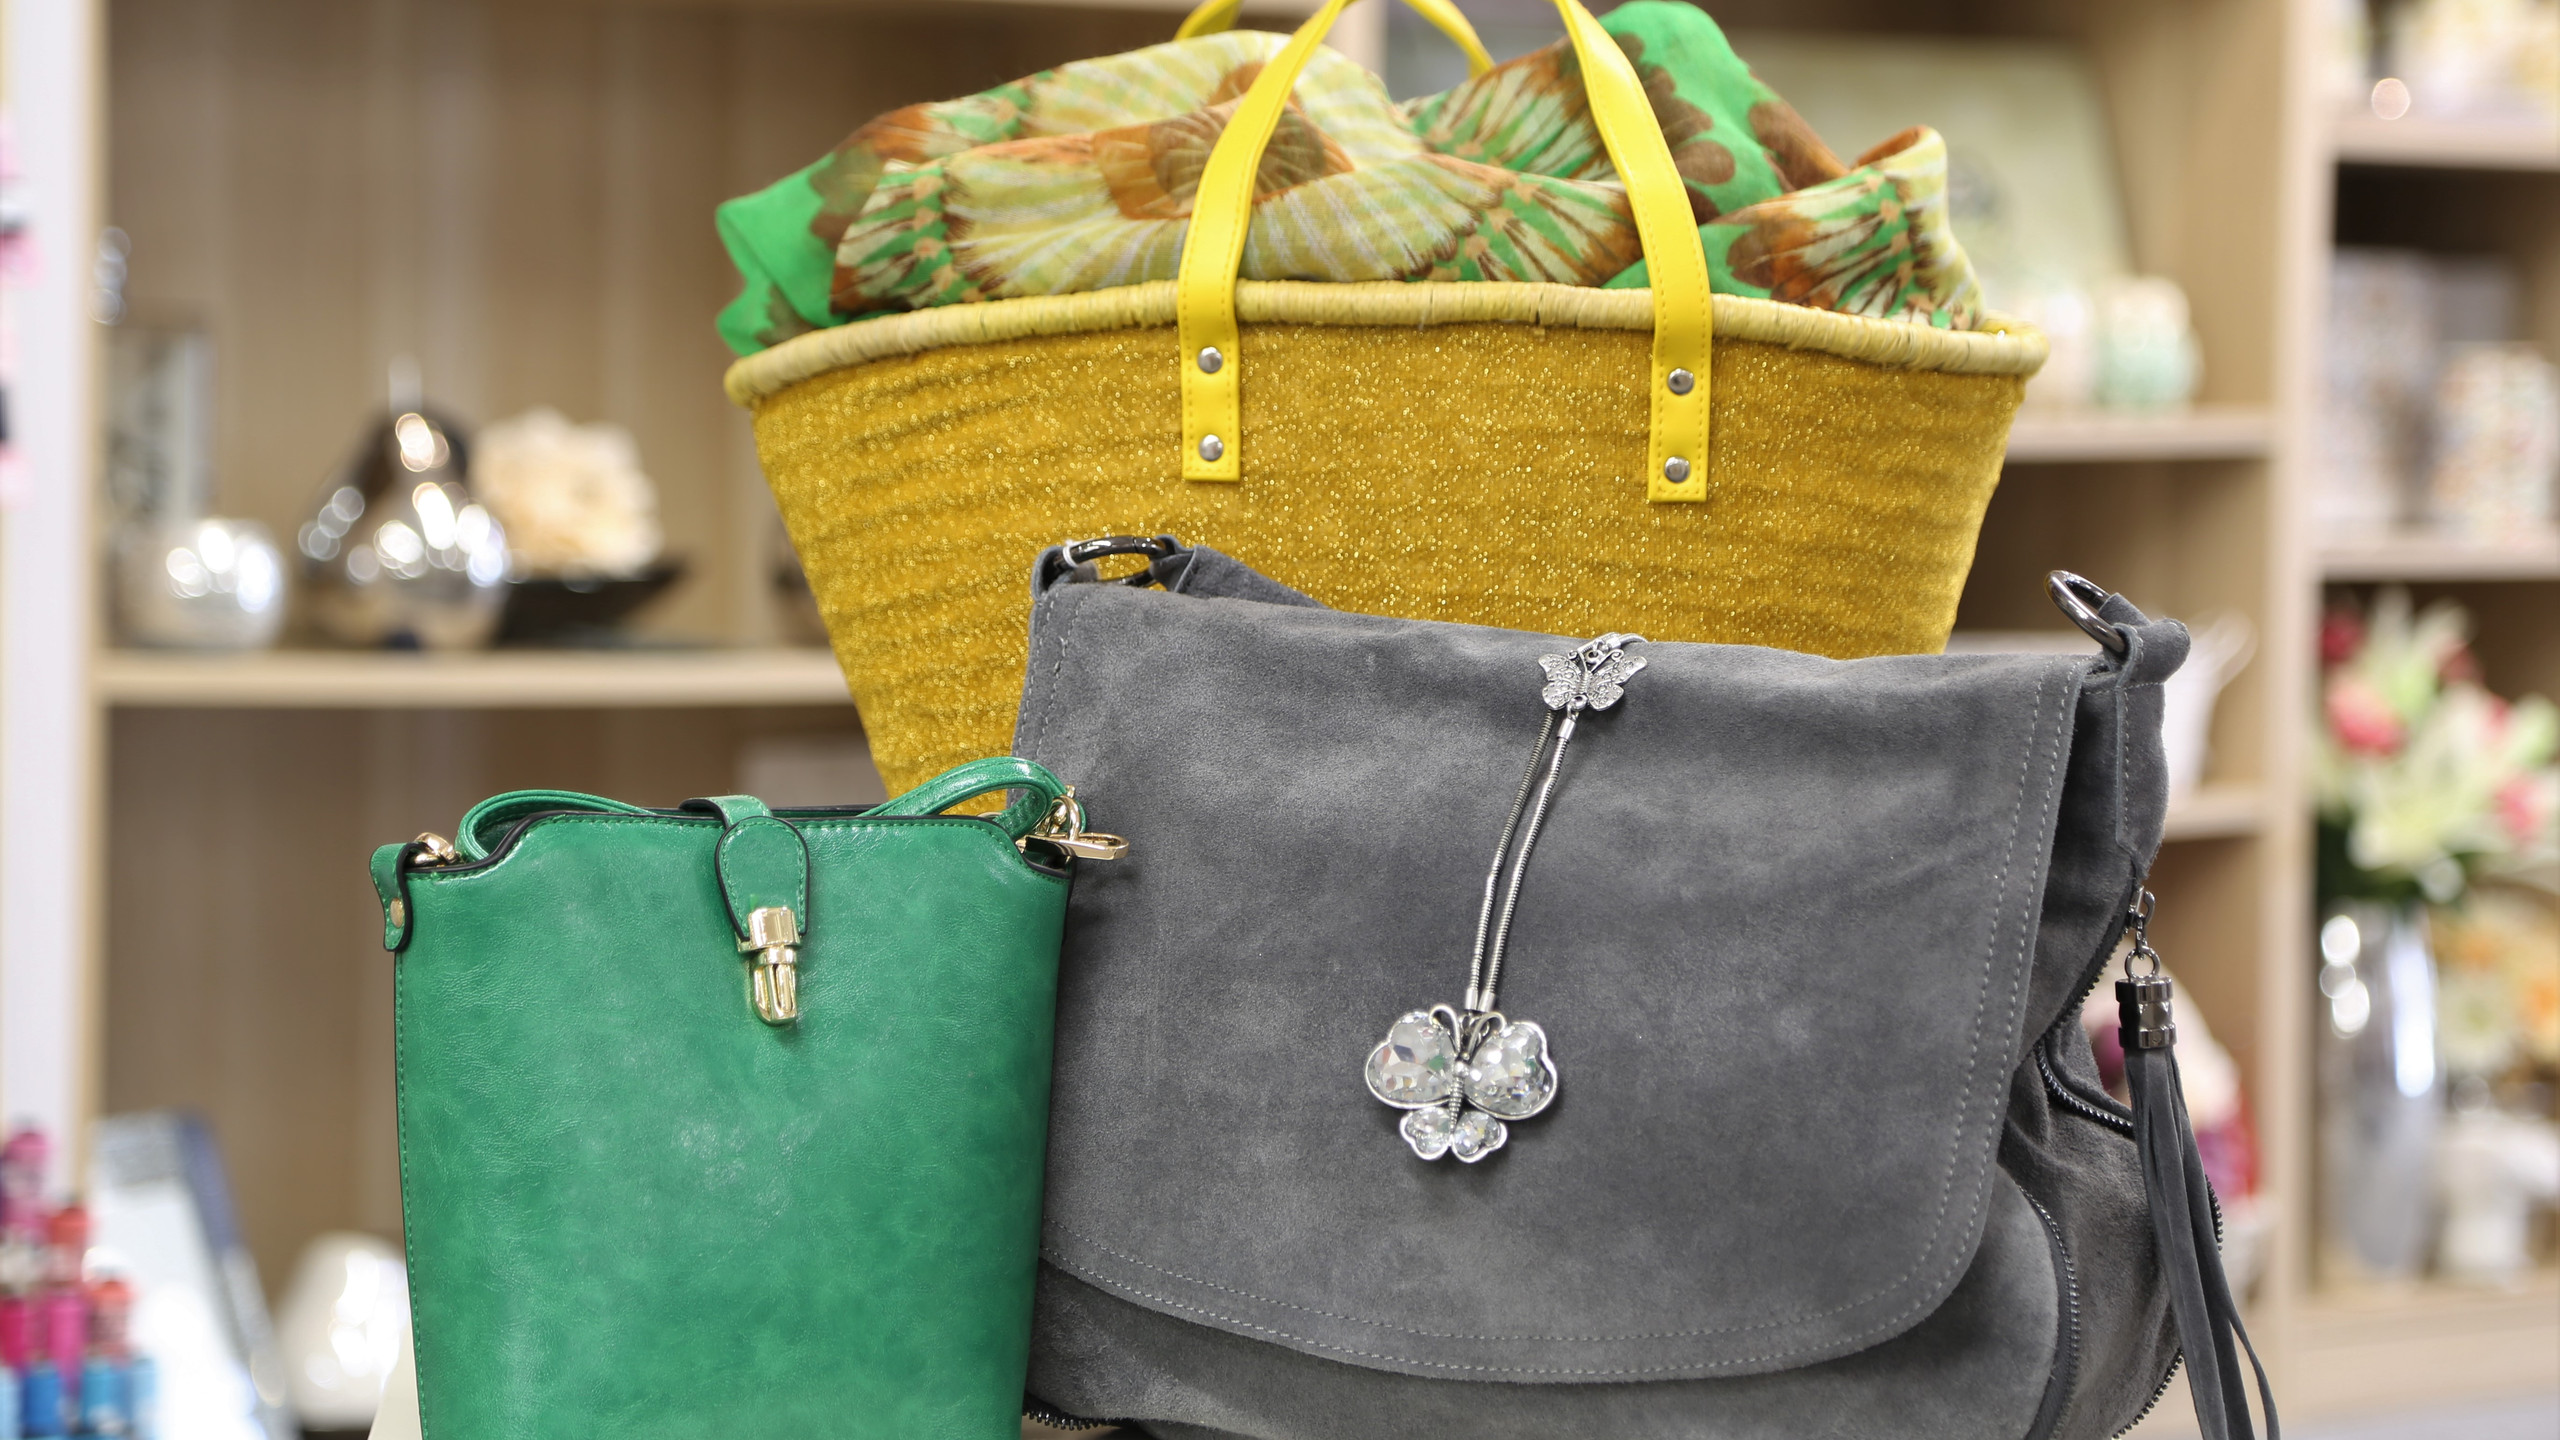 Bags at inspirations